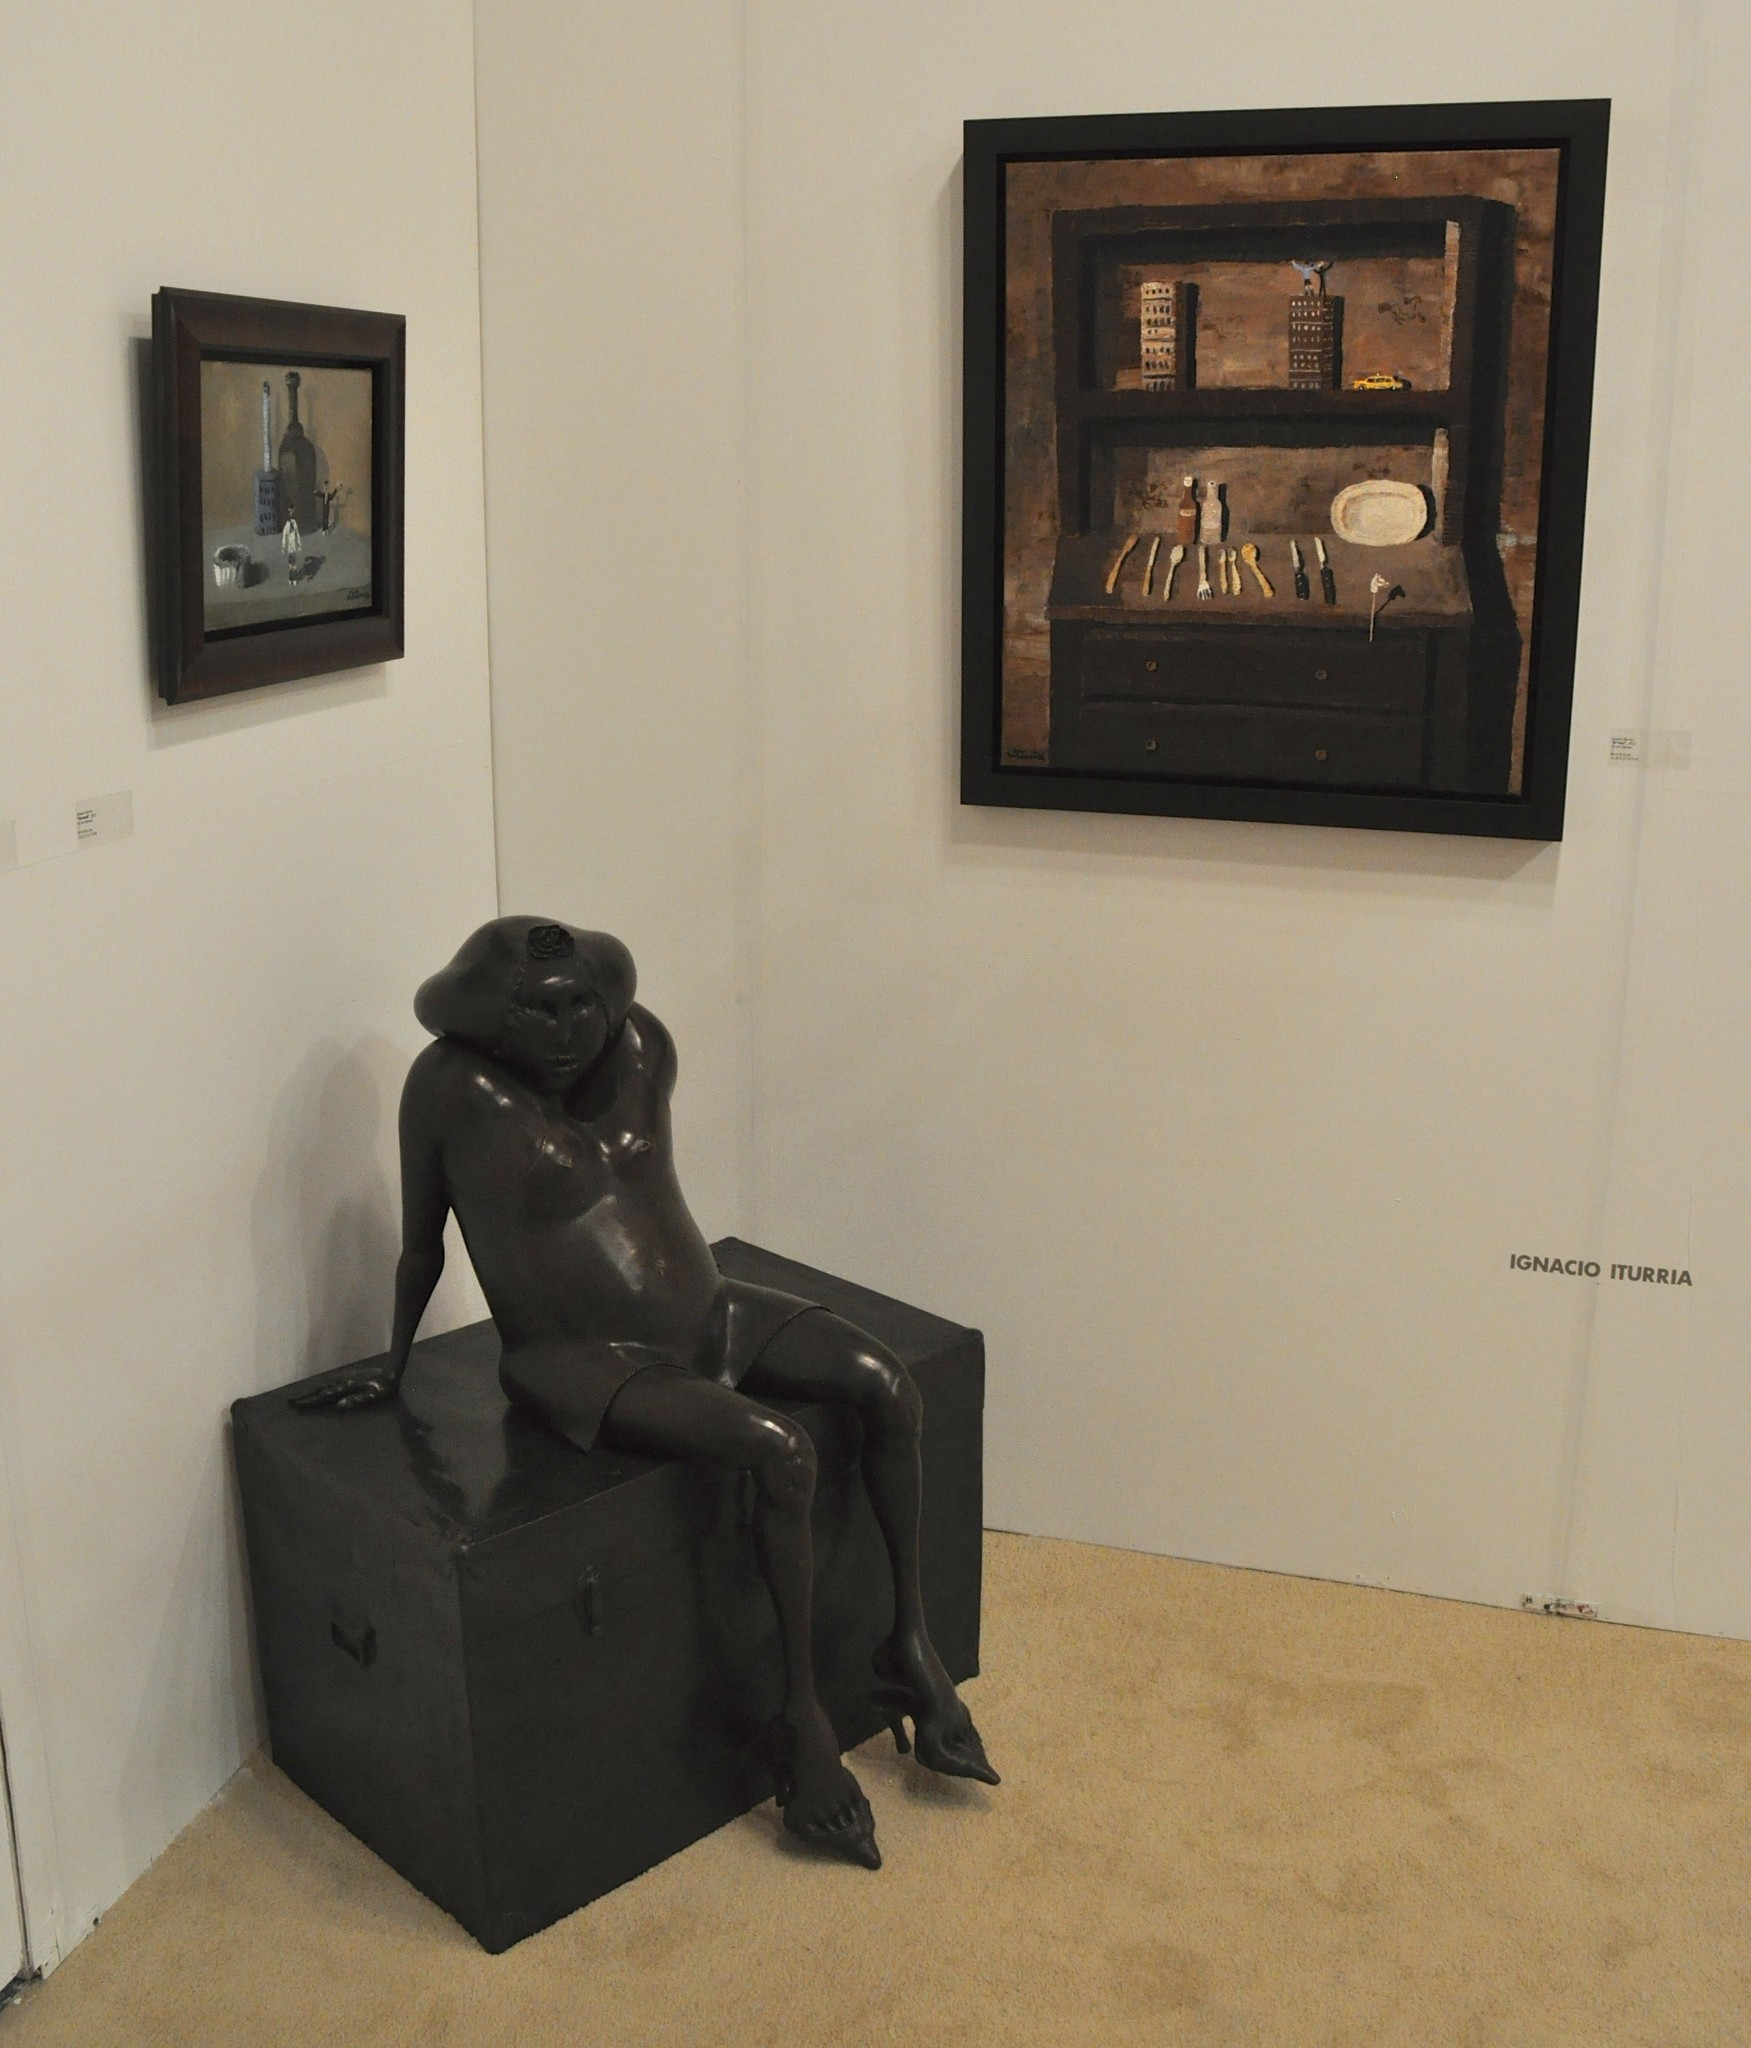 Photo: Woks by Ignacio Iturria (paintings) and Cornelis Zitman (sculpture) at Ascaso Gallery